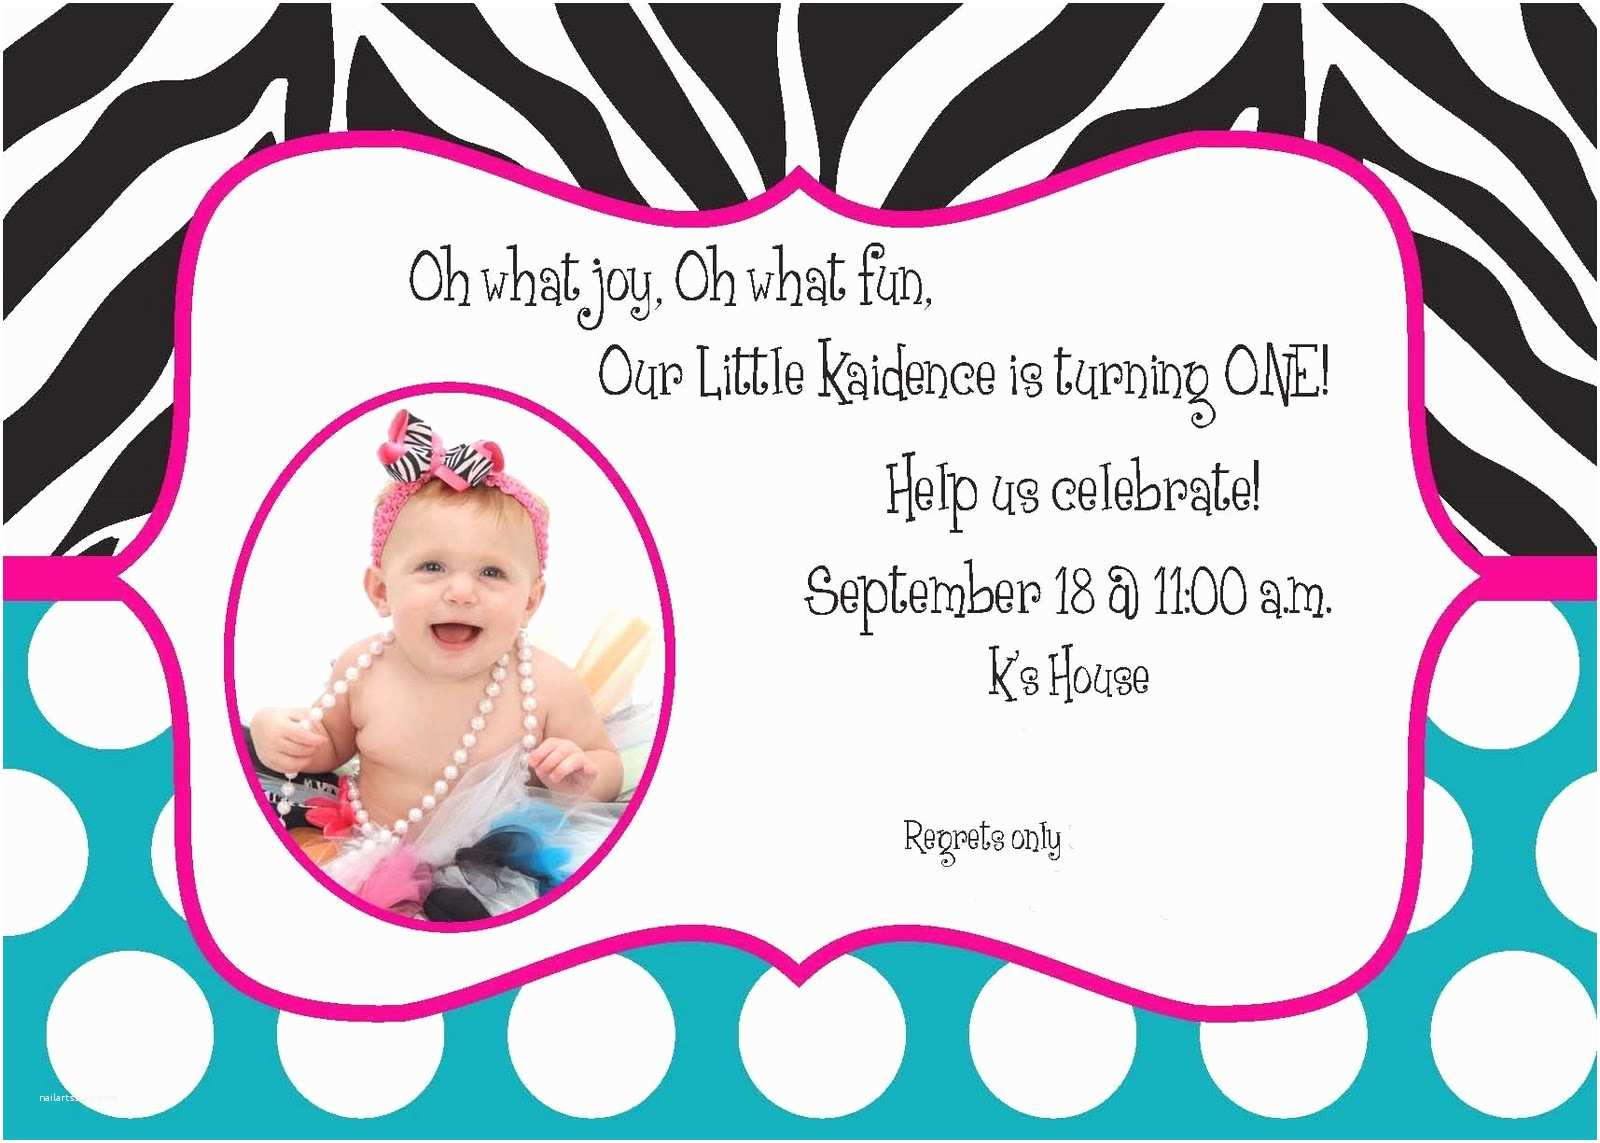 Custom Birthday Invitations Make Custom Birthday Invitations Free – Amazing